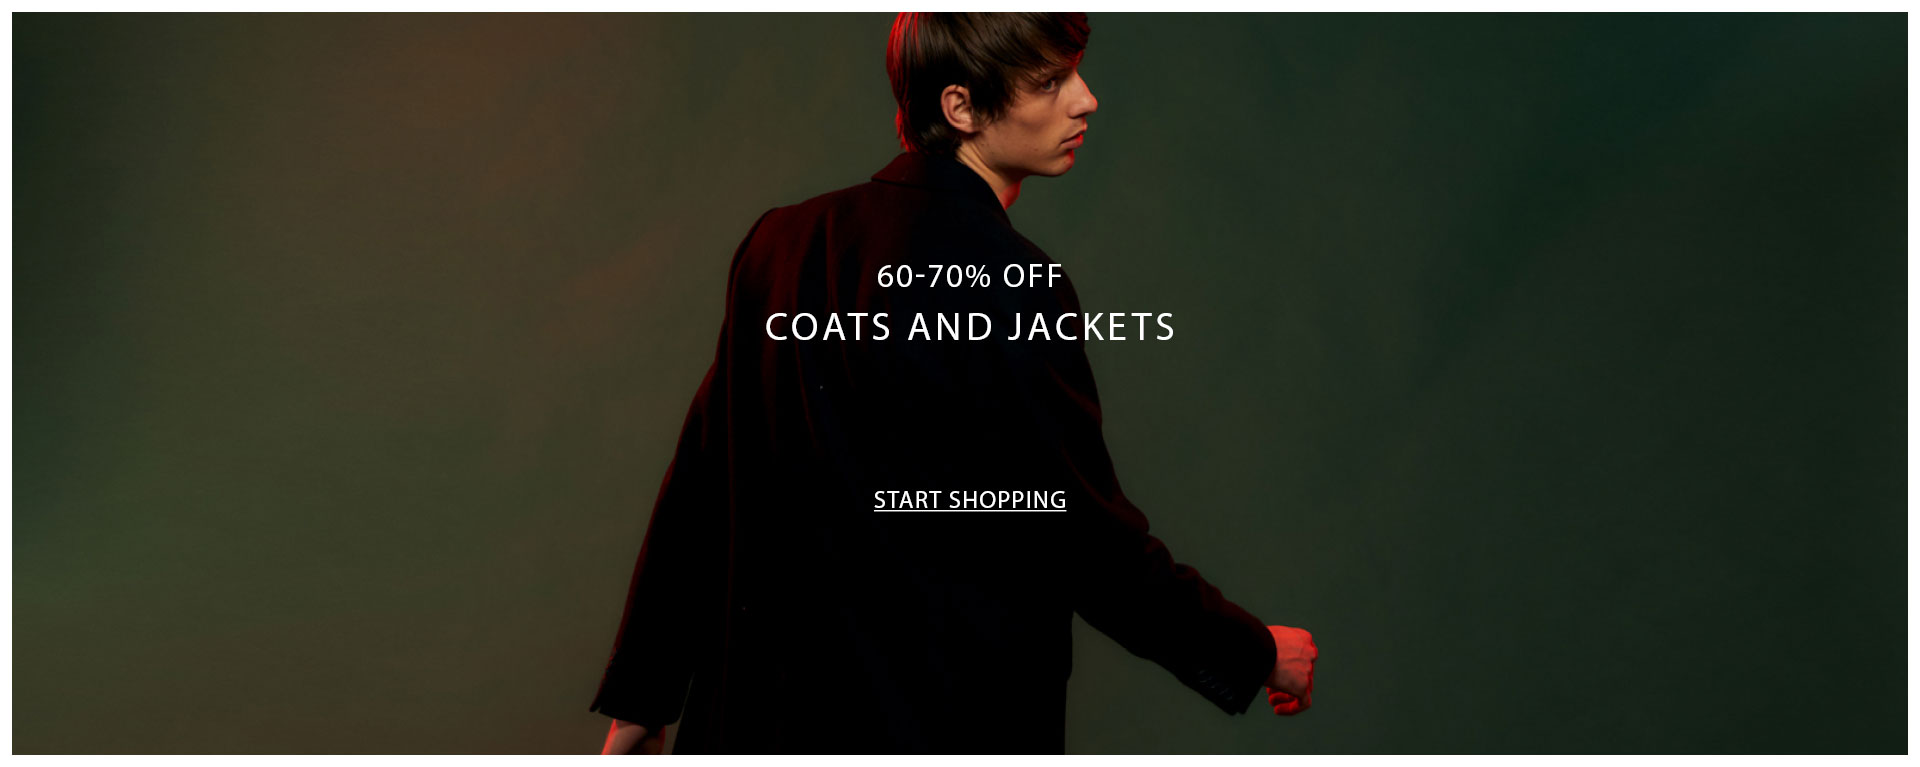 60-70% off coats & jackets